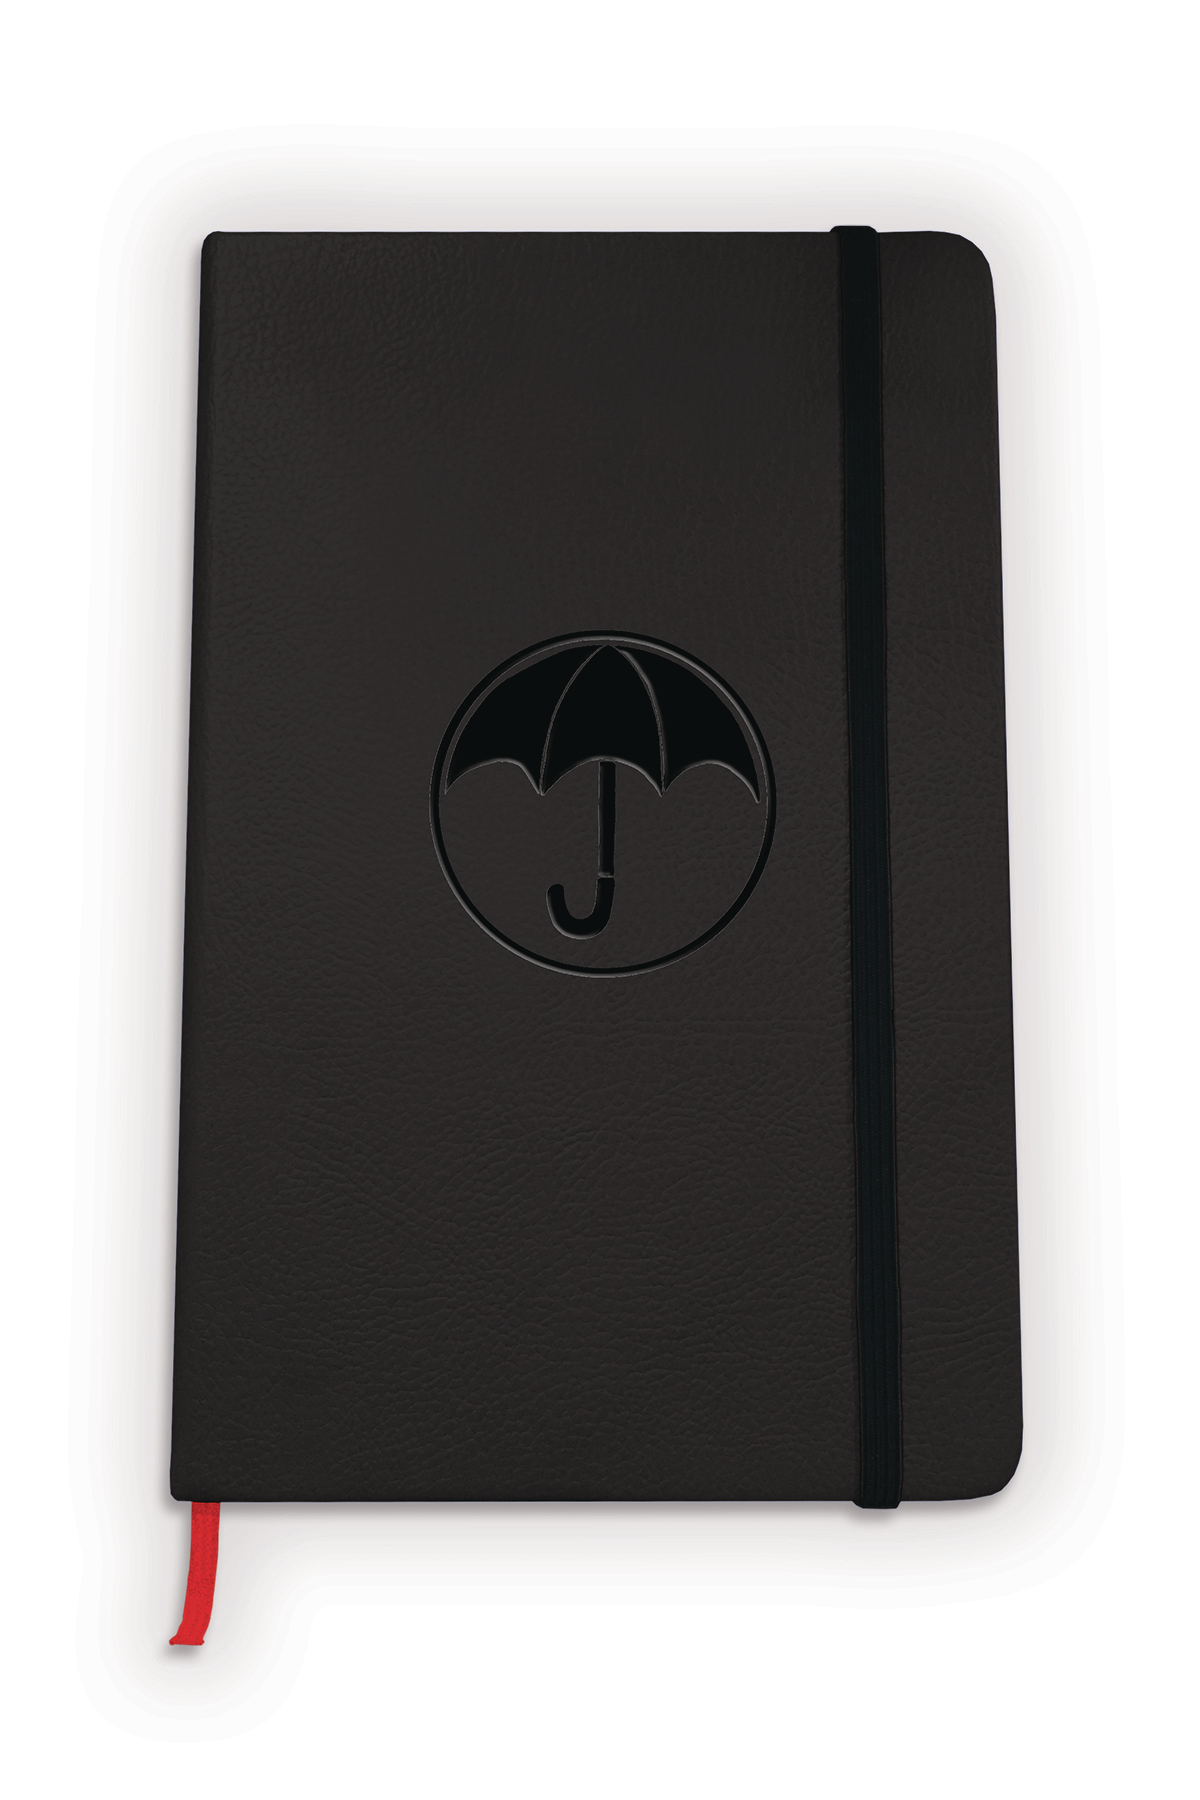 UMBRELLA ACADEMY JOURNAL